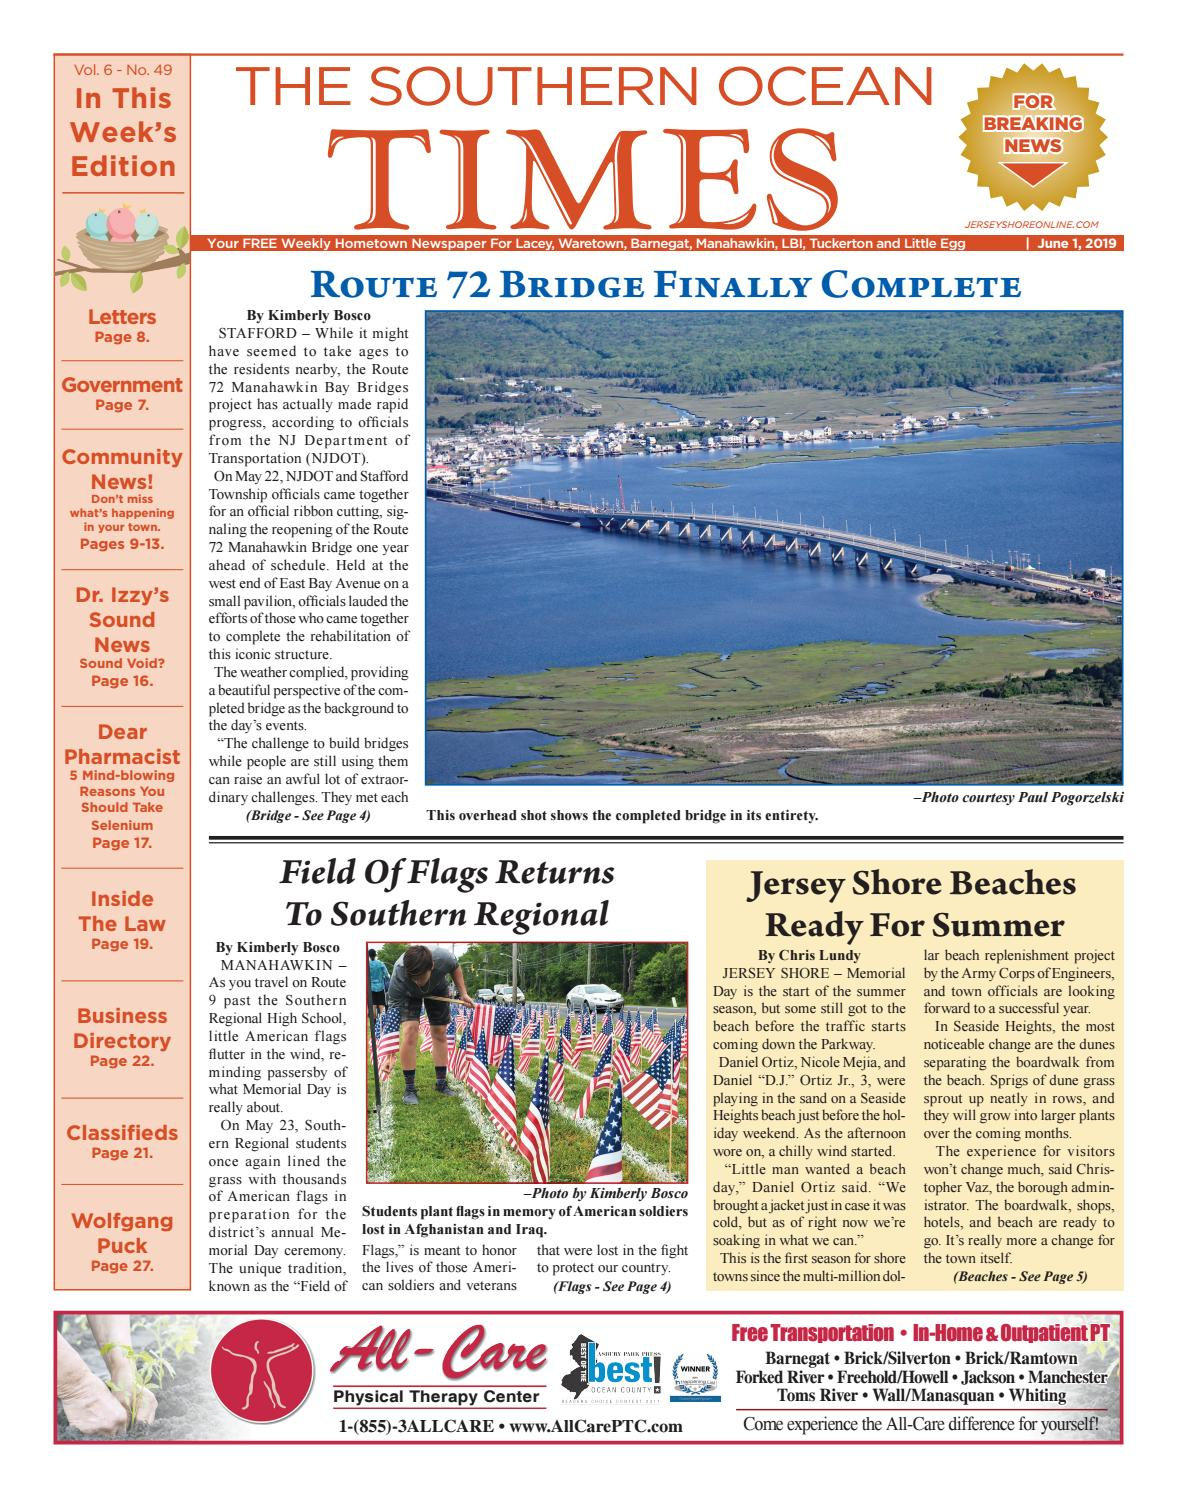 2019 06 01 The Southern Ocean Times By Micromedia Publications